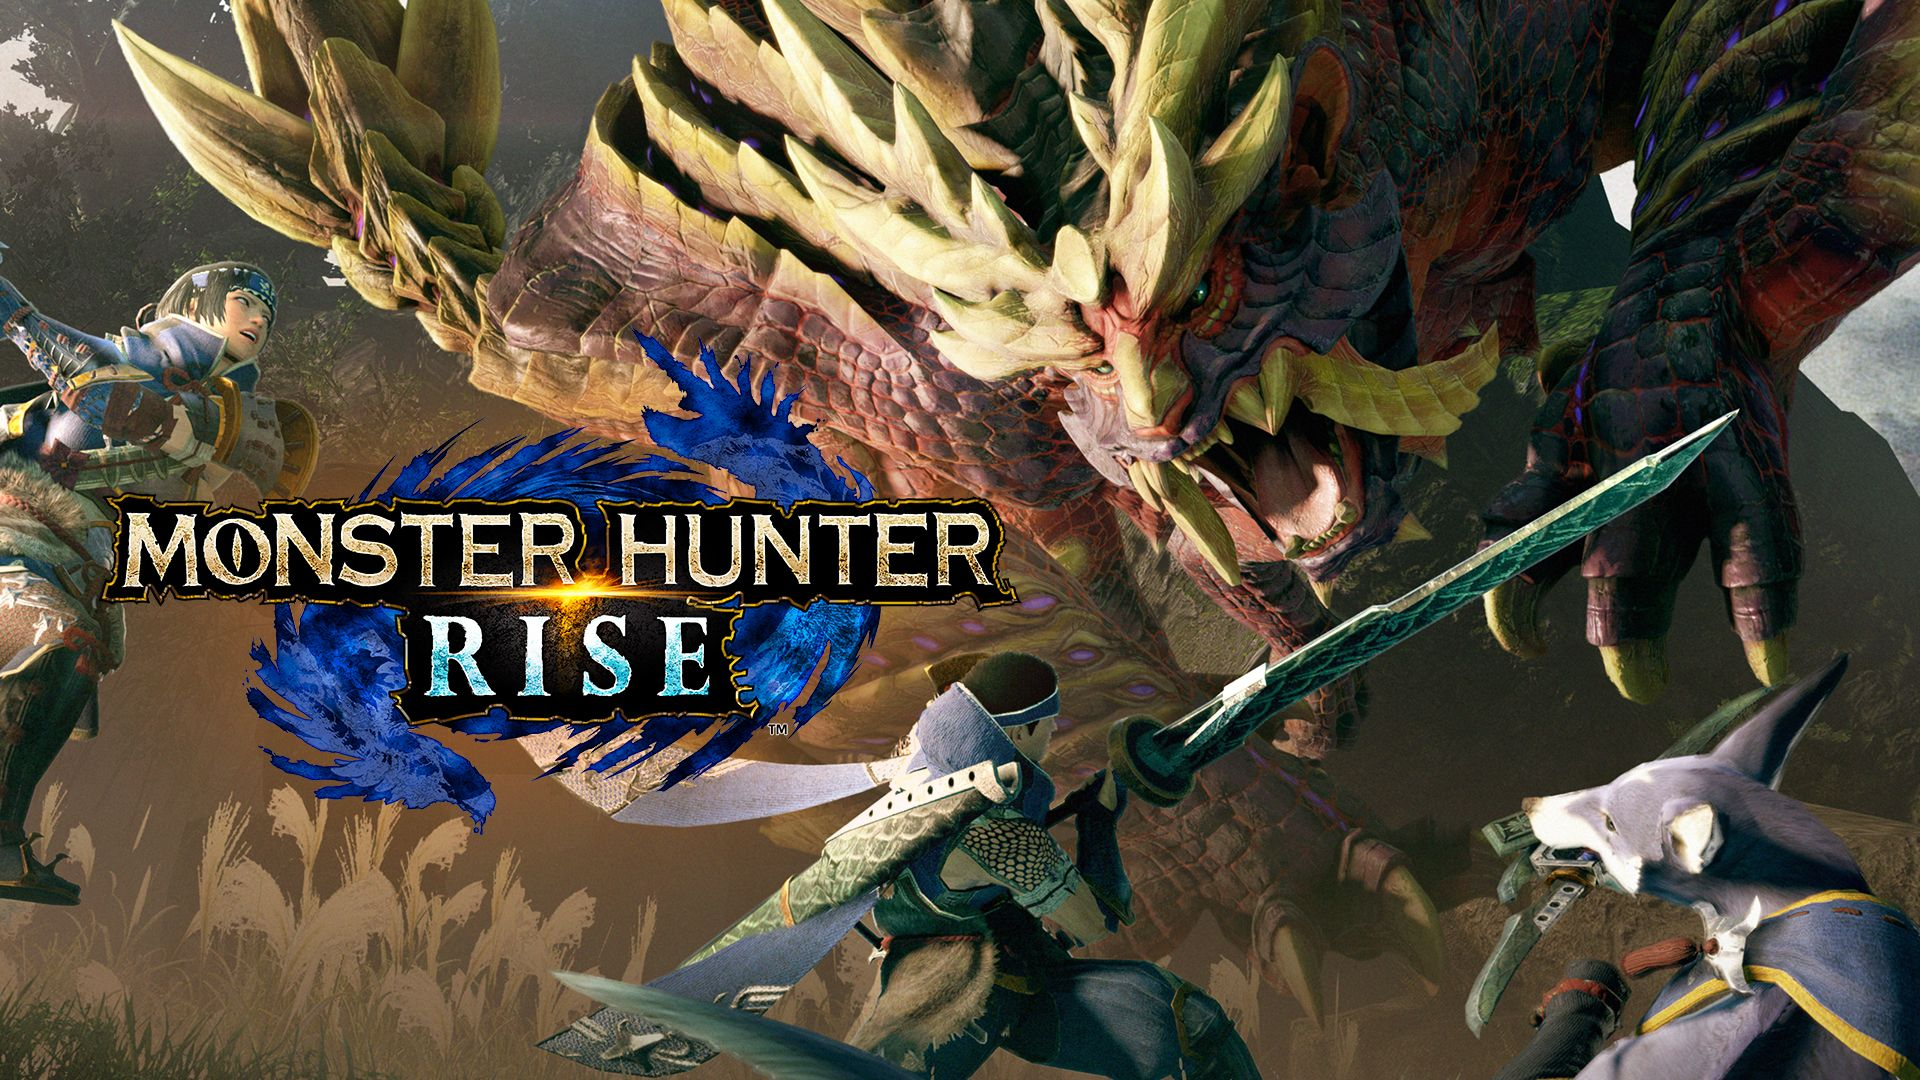 /monster-hunter-rise-trailer-showcases-new-monsters-locations-and-returning-favorites-88o33wd feature image